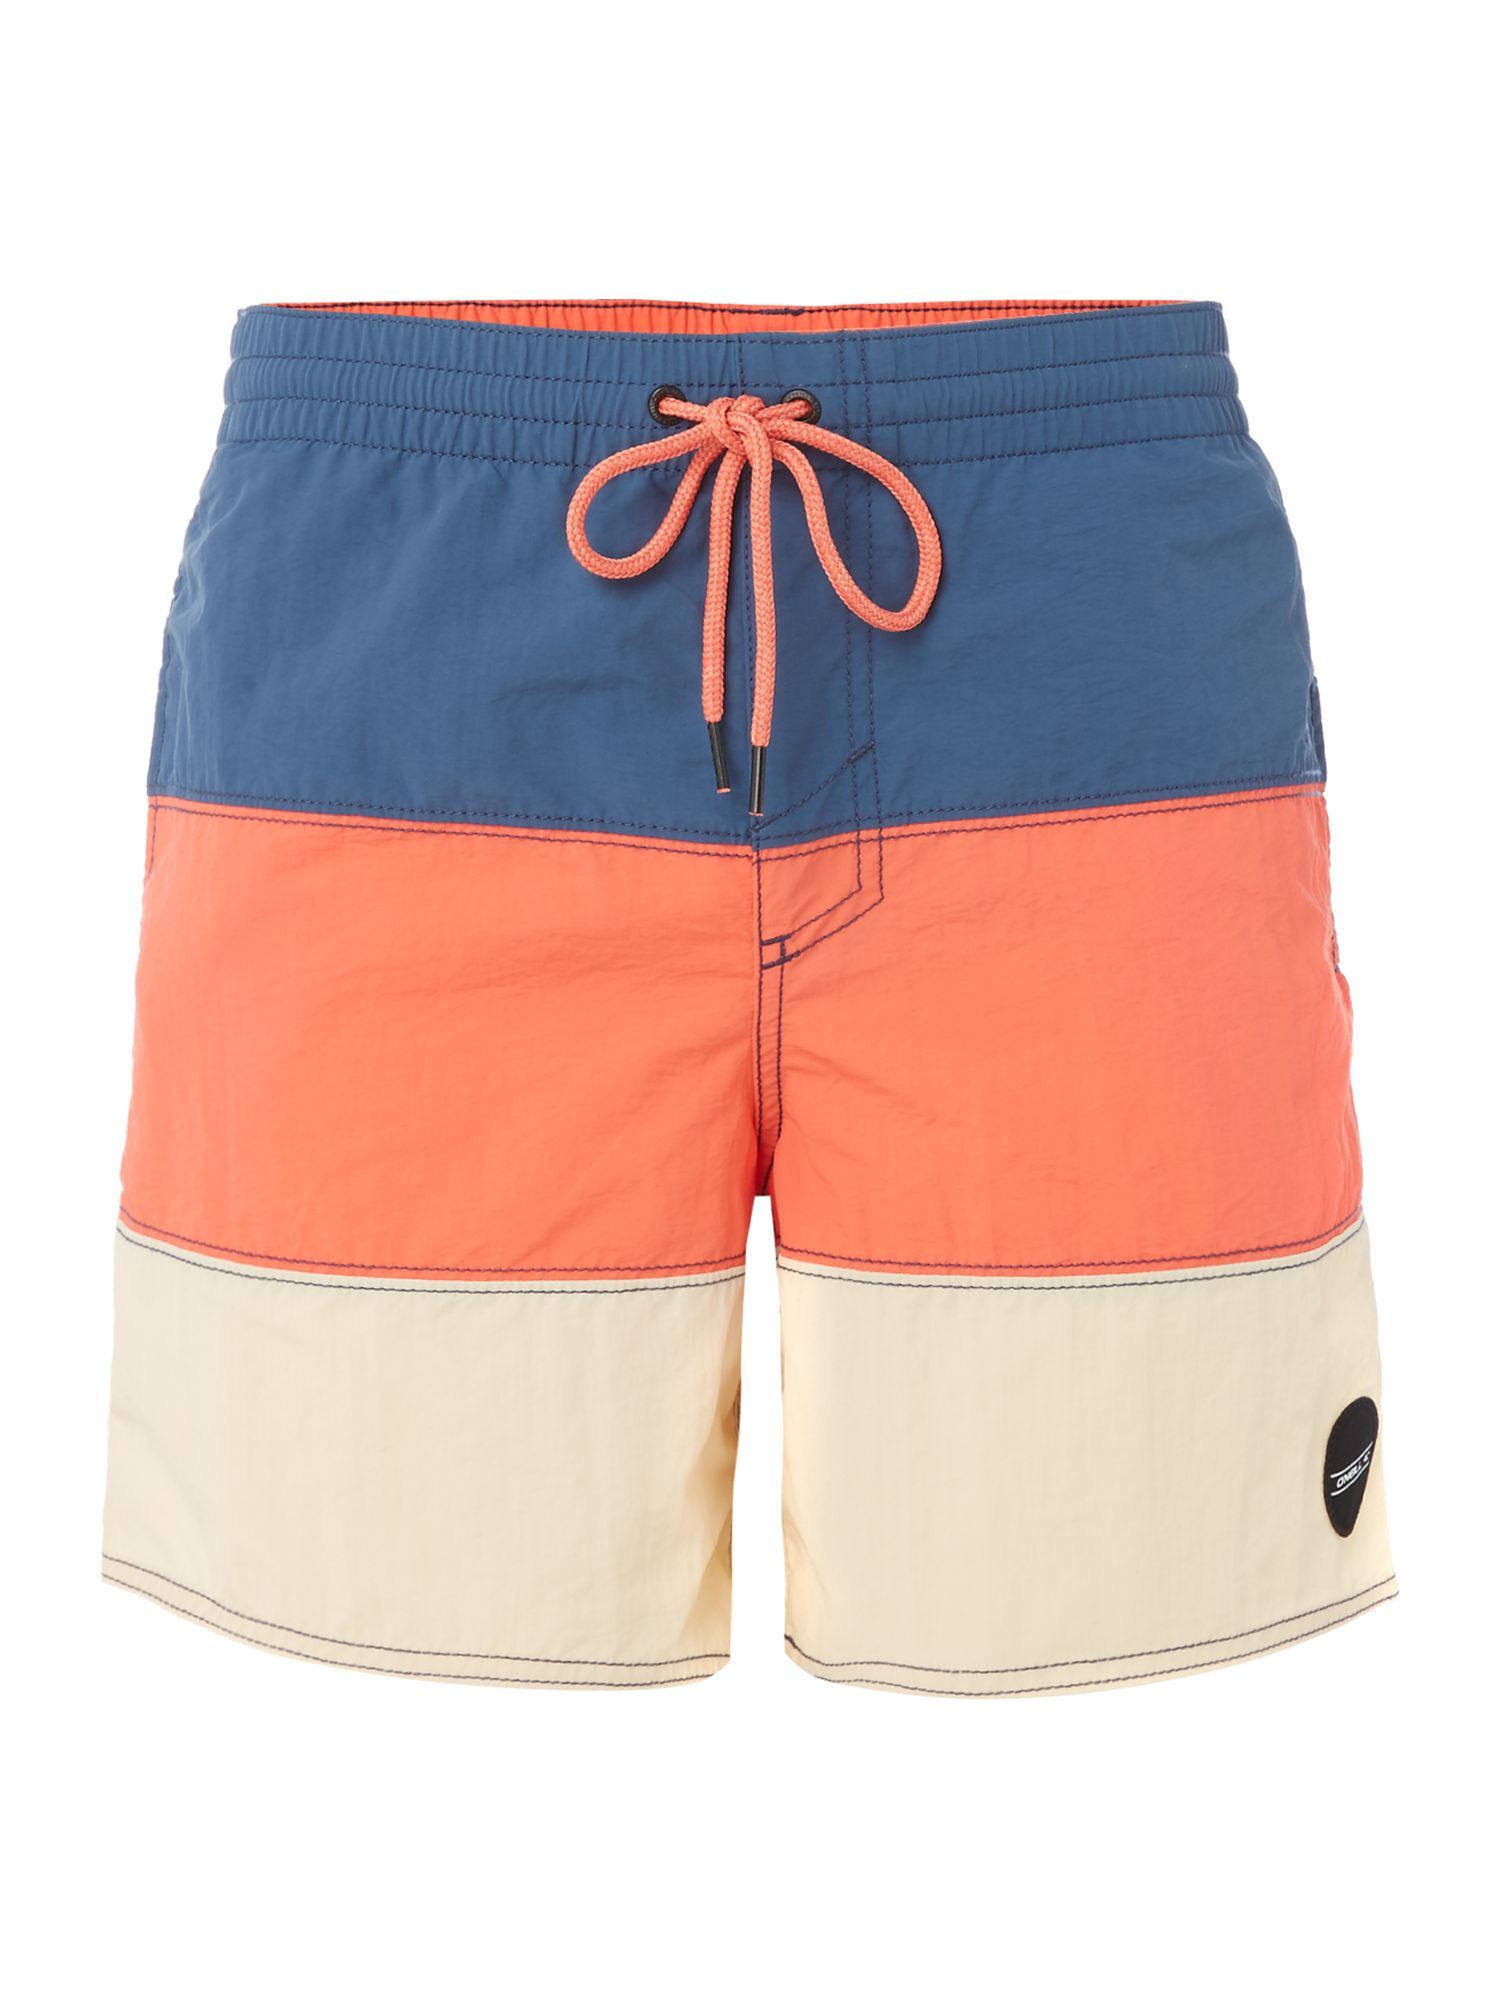 Men's O'Neill Cross step shorts, Red